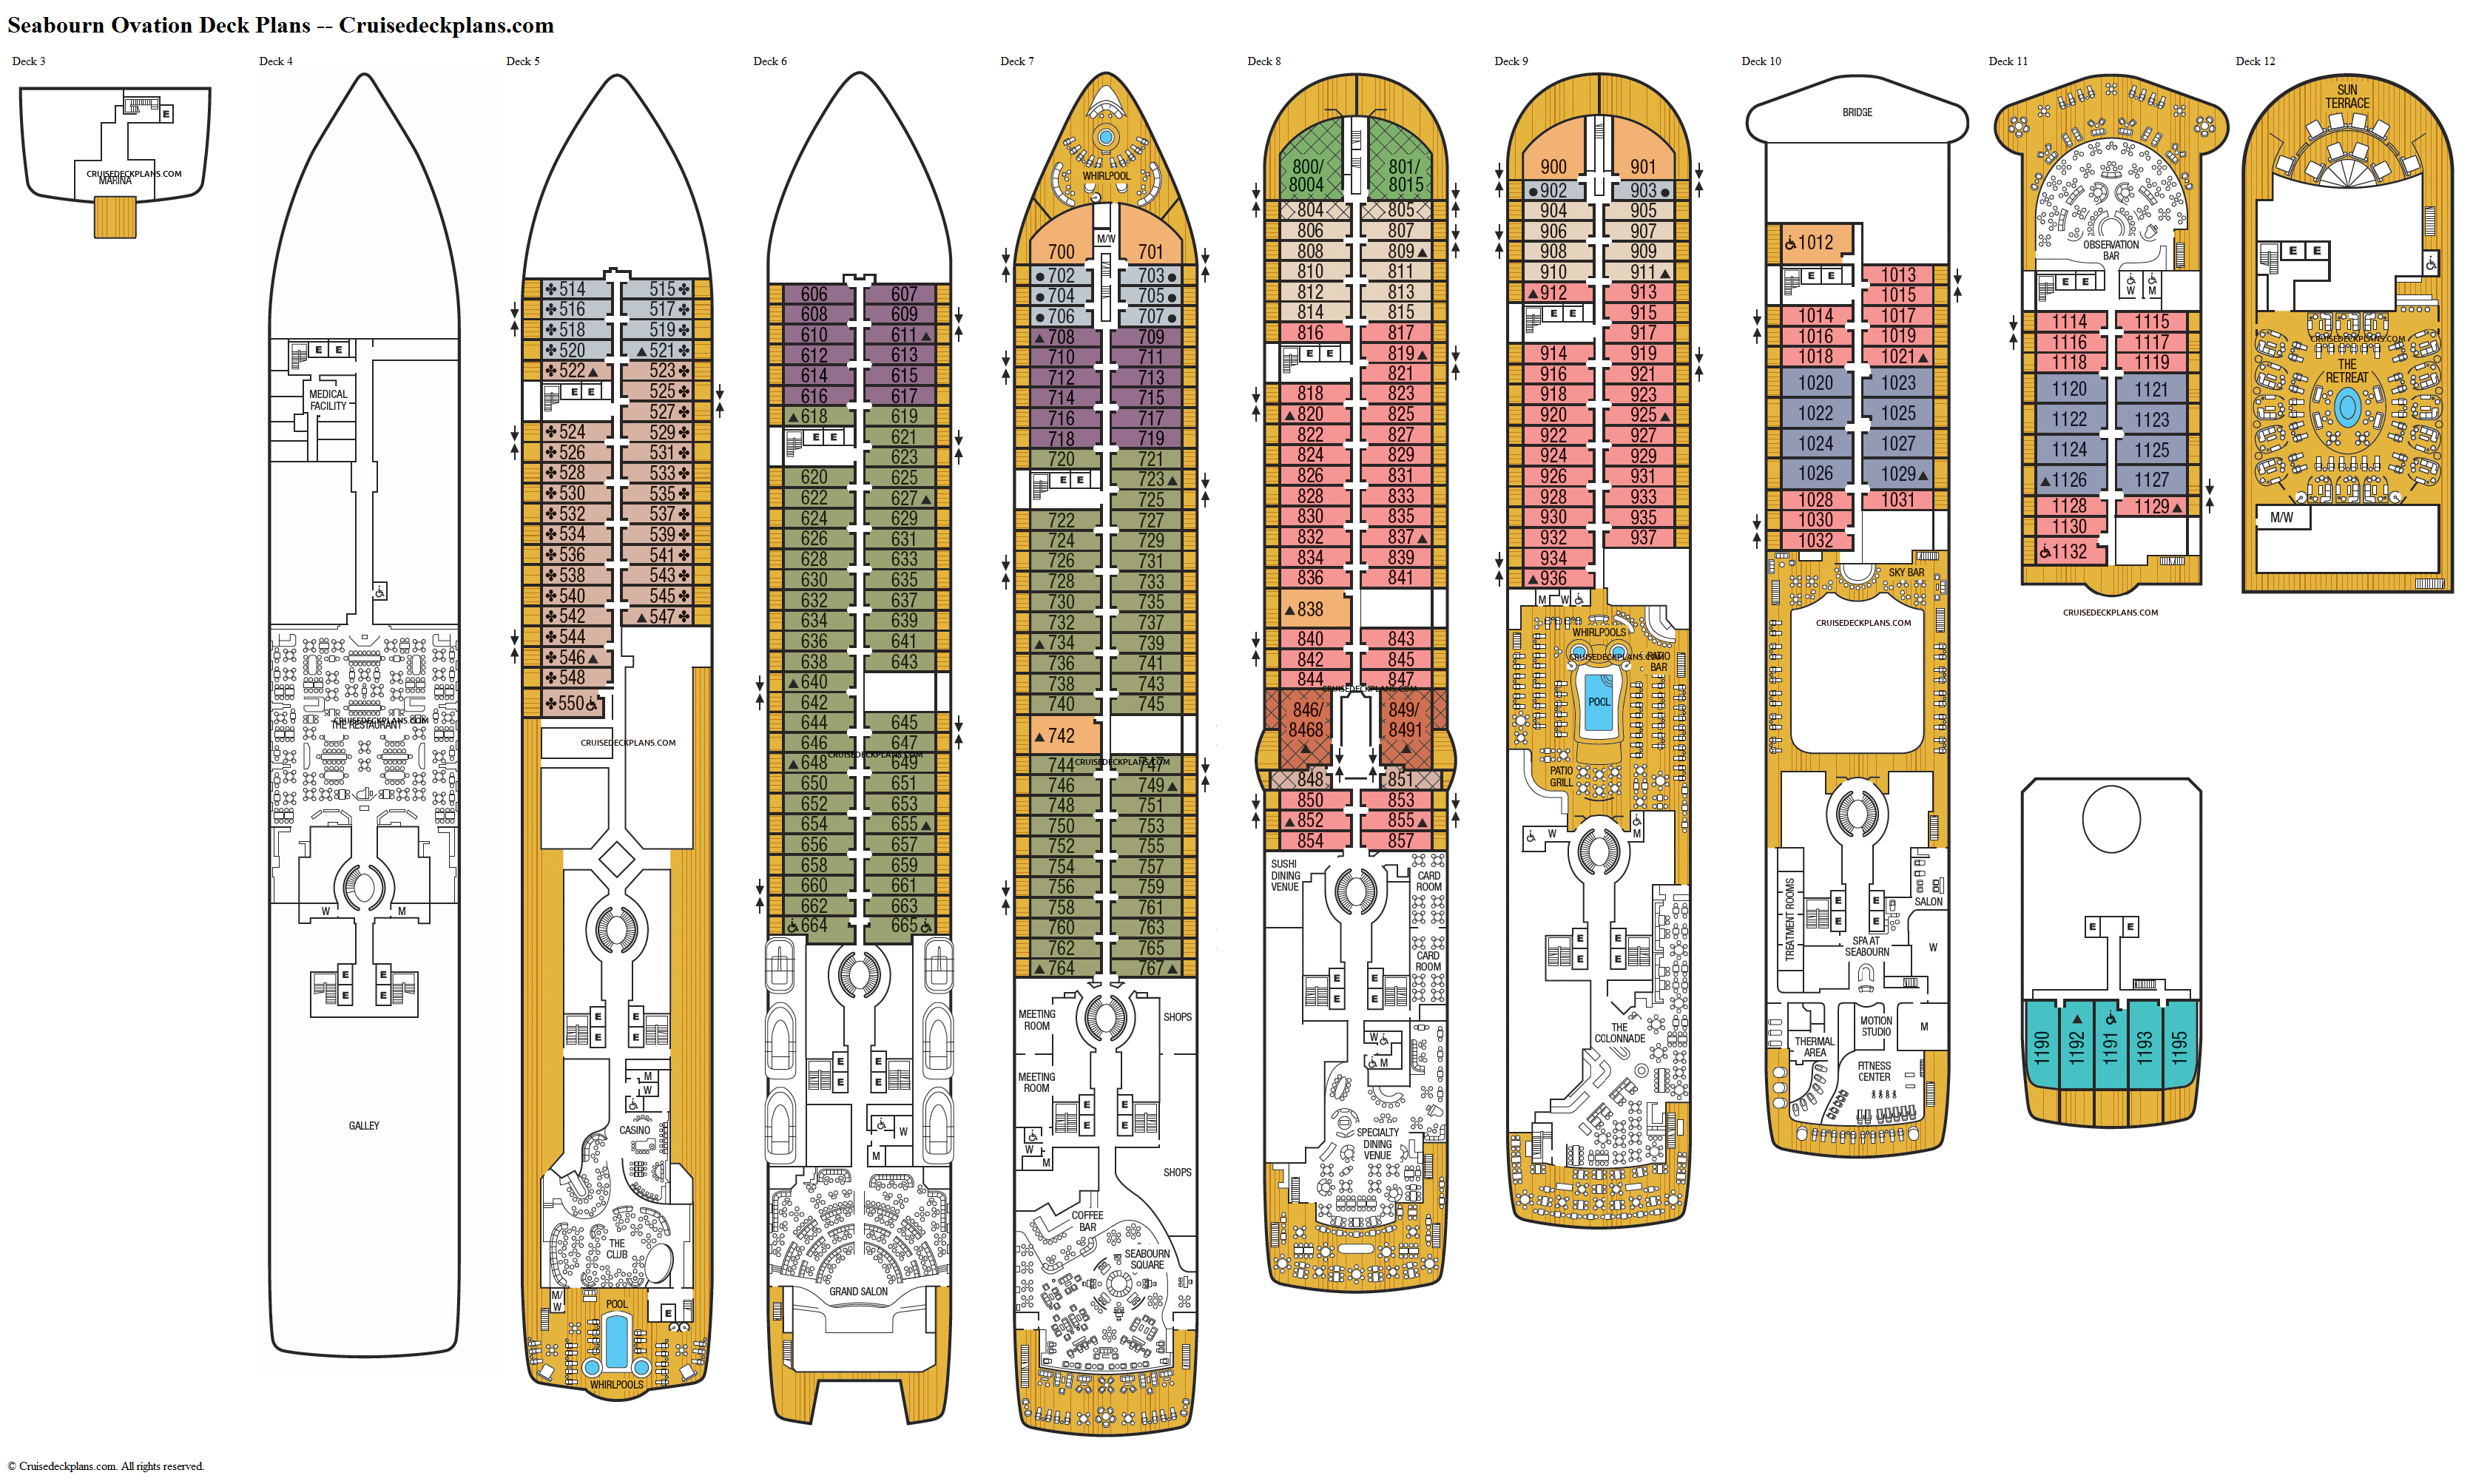 Seabourn Ovation deck plans image